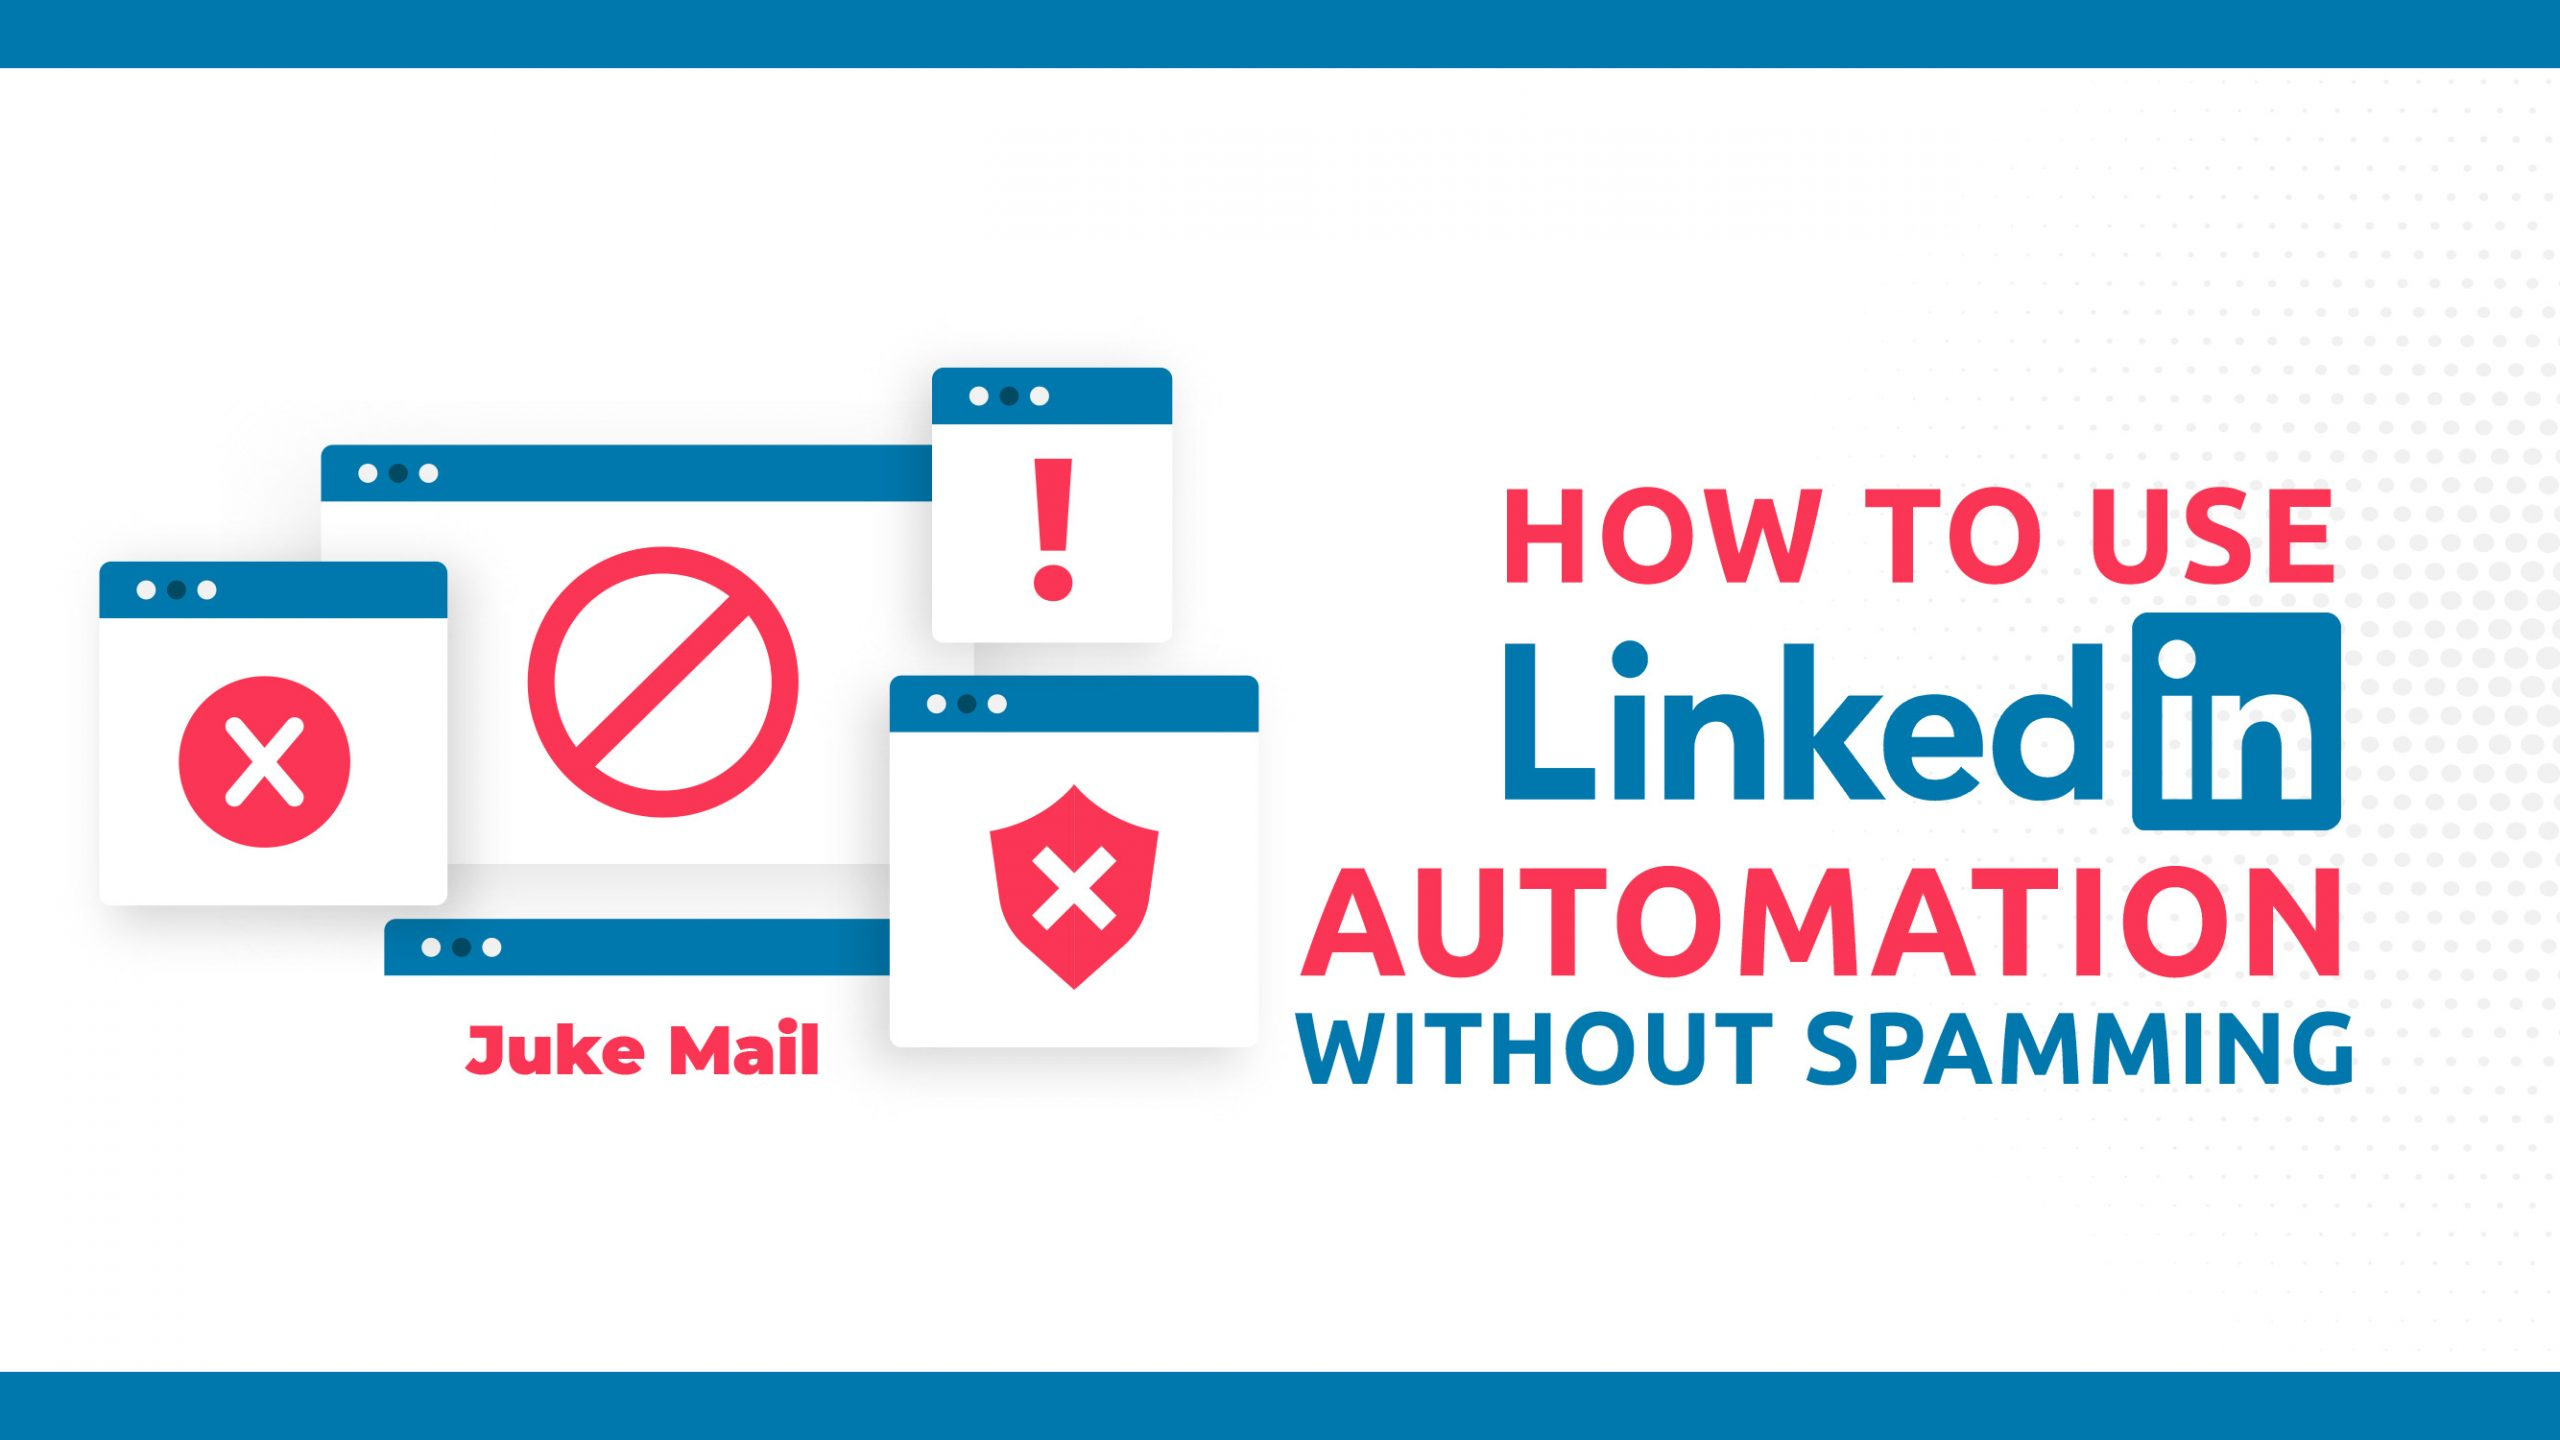 How To Use LinkedIn Automation Without Spamming